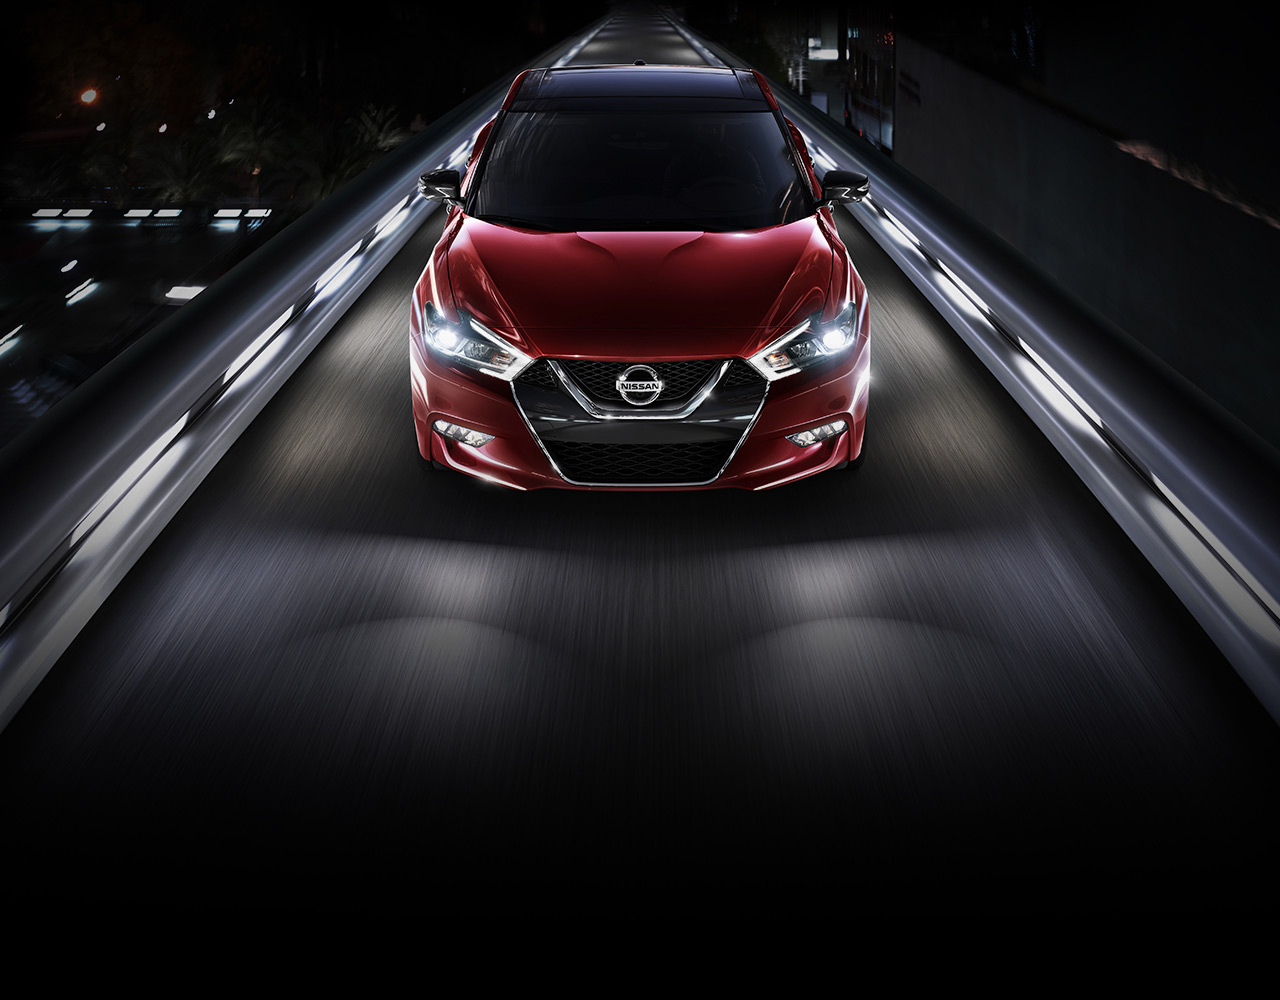 2016-nissan-maxima-coulis-red-front-aerial-view